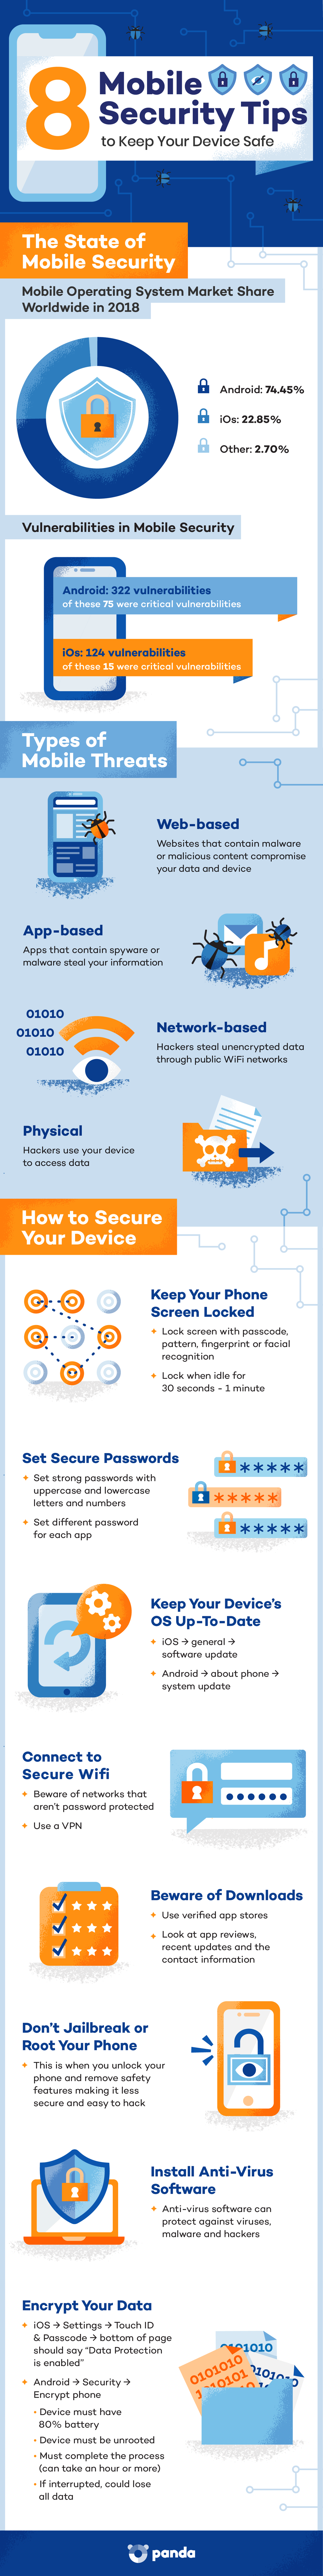 mobile security tips infographic